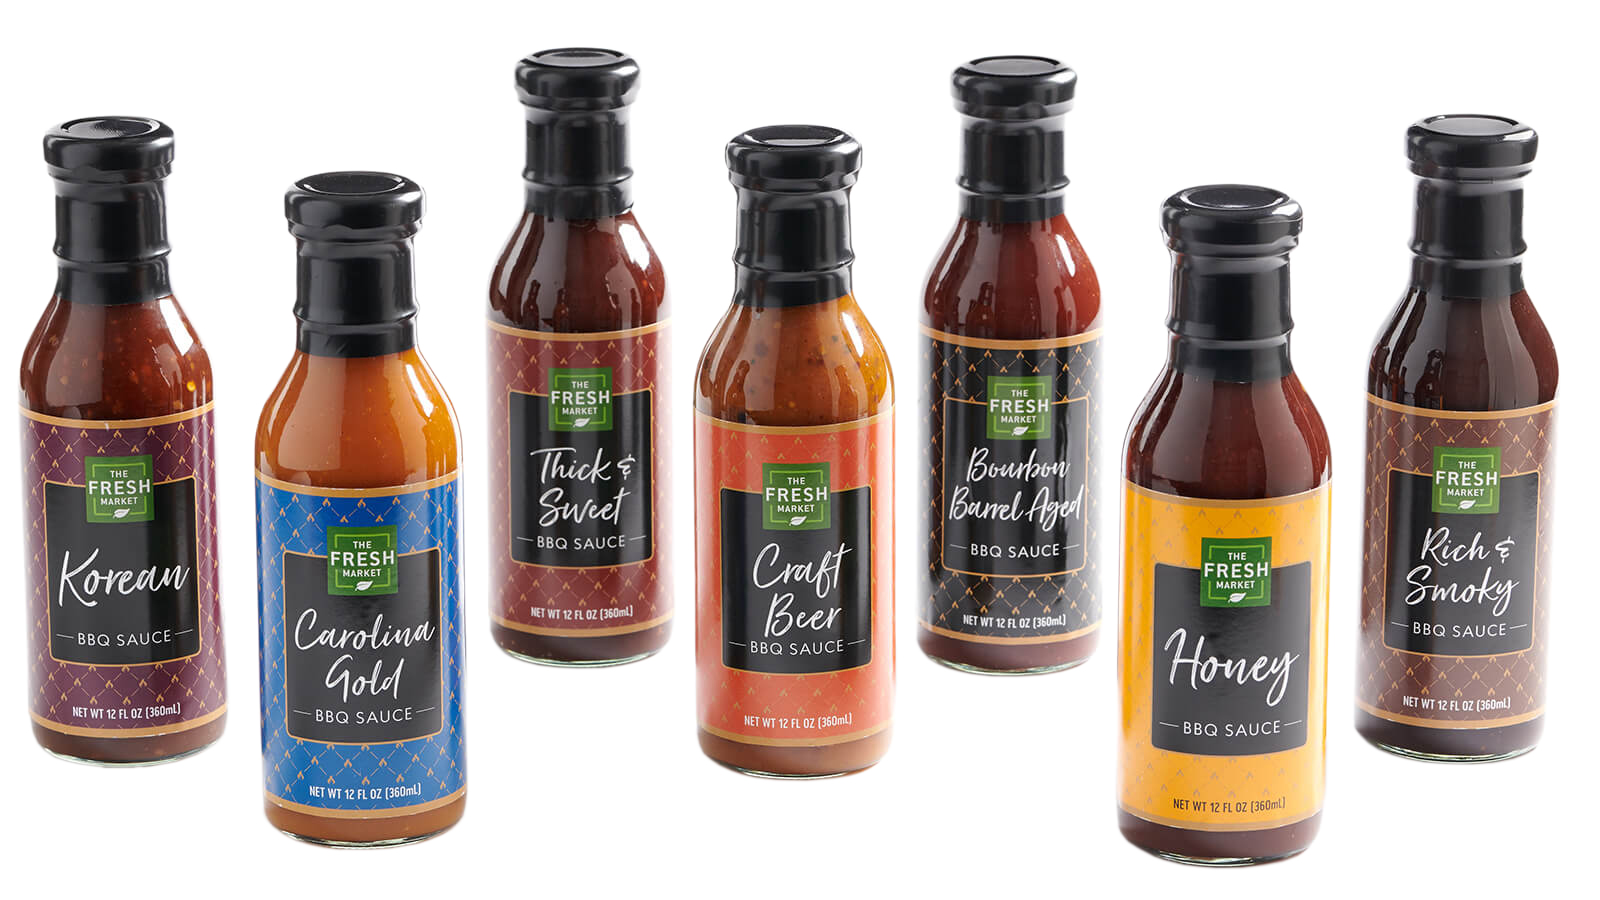 The Fresh Market BBQ Sauce